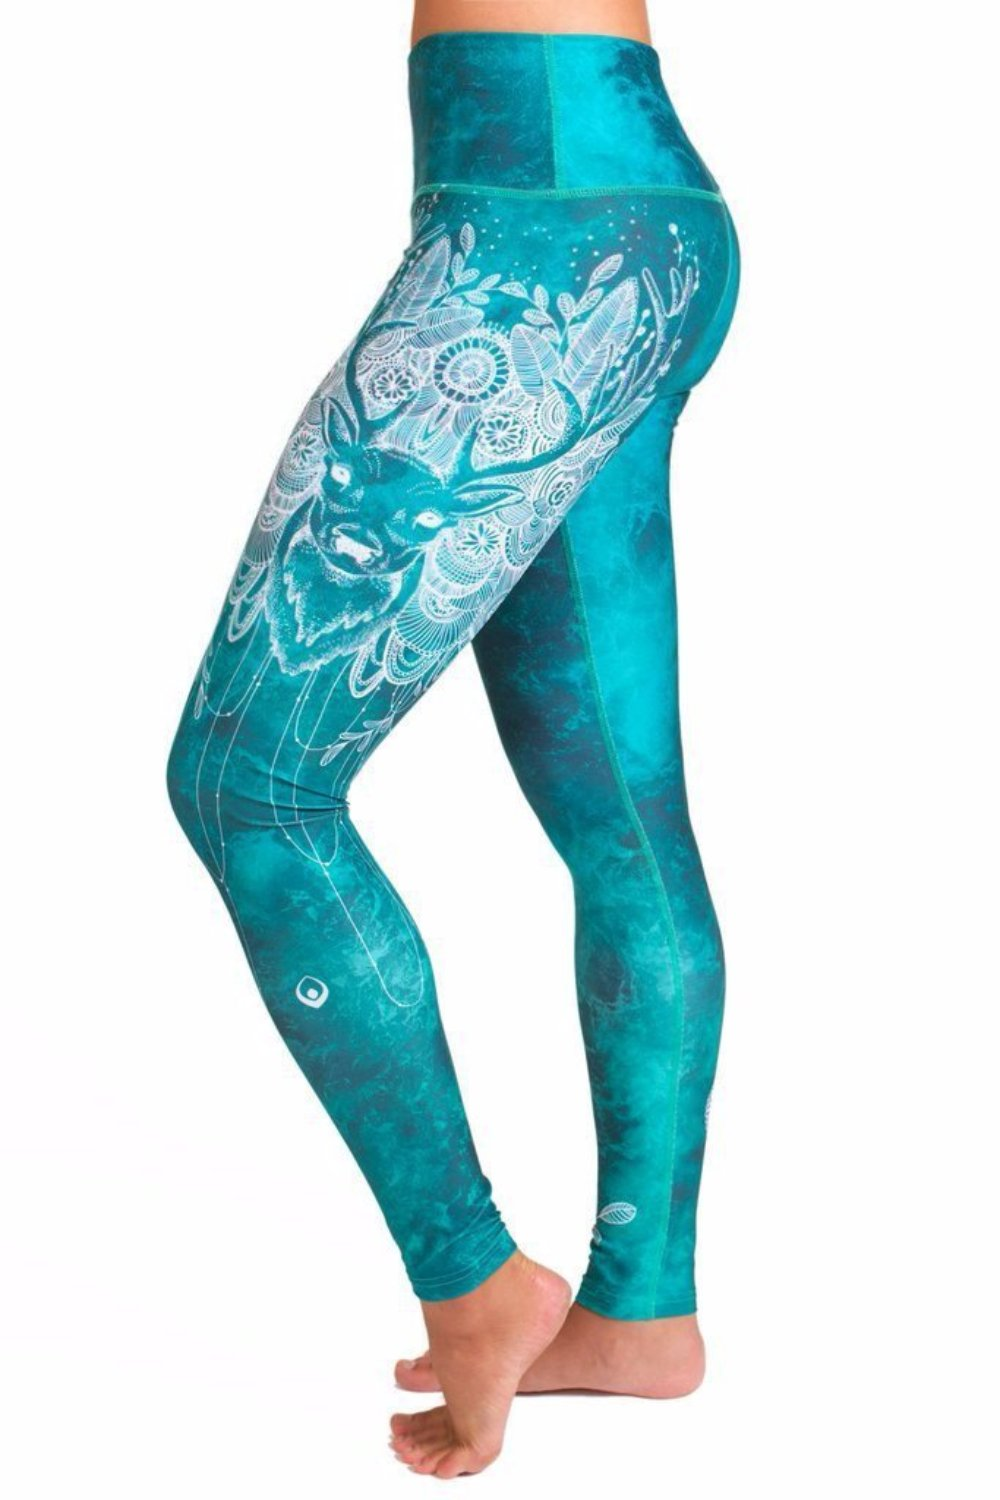 Teal High waisted yoga leggings with white deer design from Inner Fire. Premium fabrics made from recycled water bottles. Majestic Side view